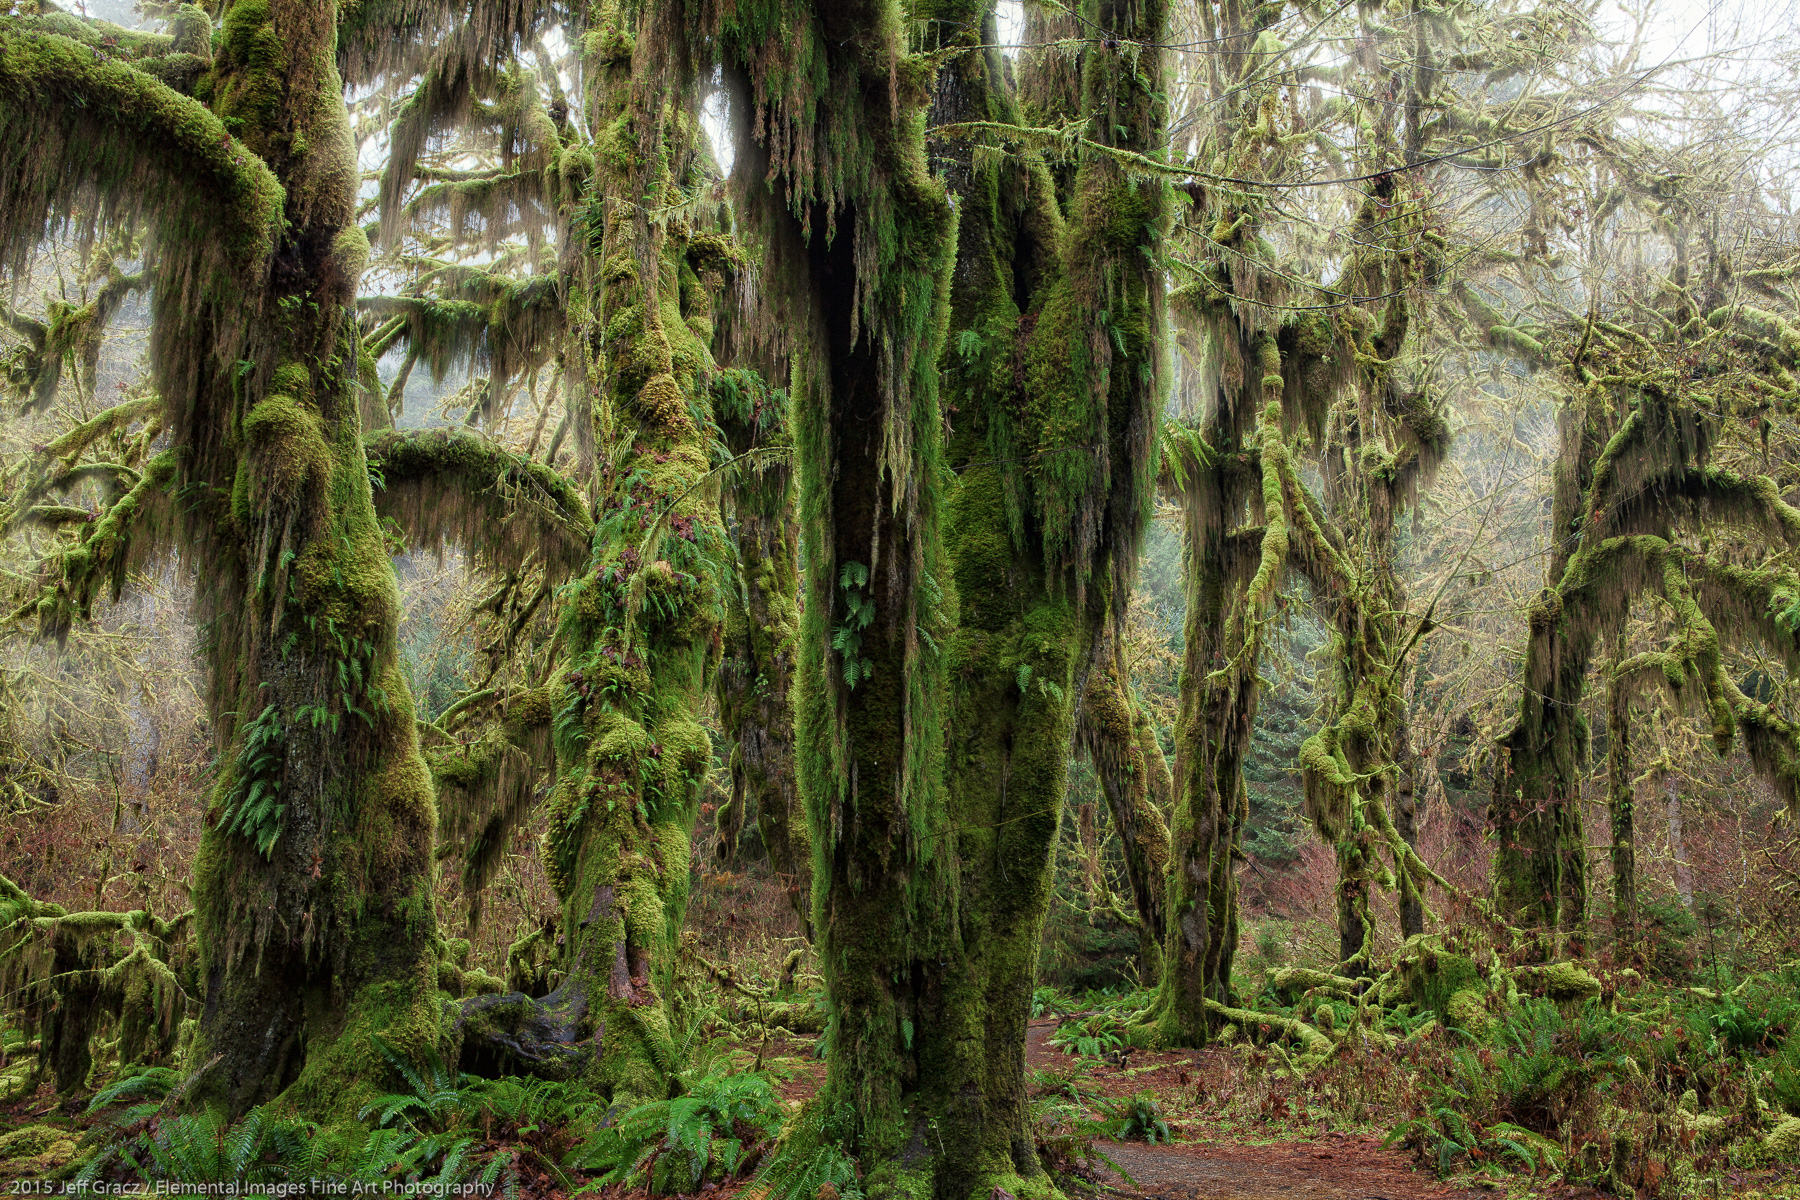 Hall of Mosses | Olympic National Park | WA | USA - © 2015 Jeff Gracz / Elemental Images Fine Art Photography - All Rights Reserved Worldwide